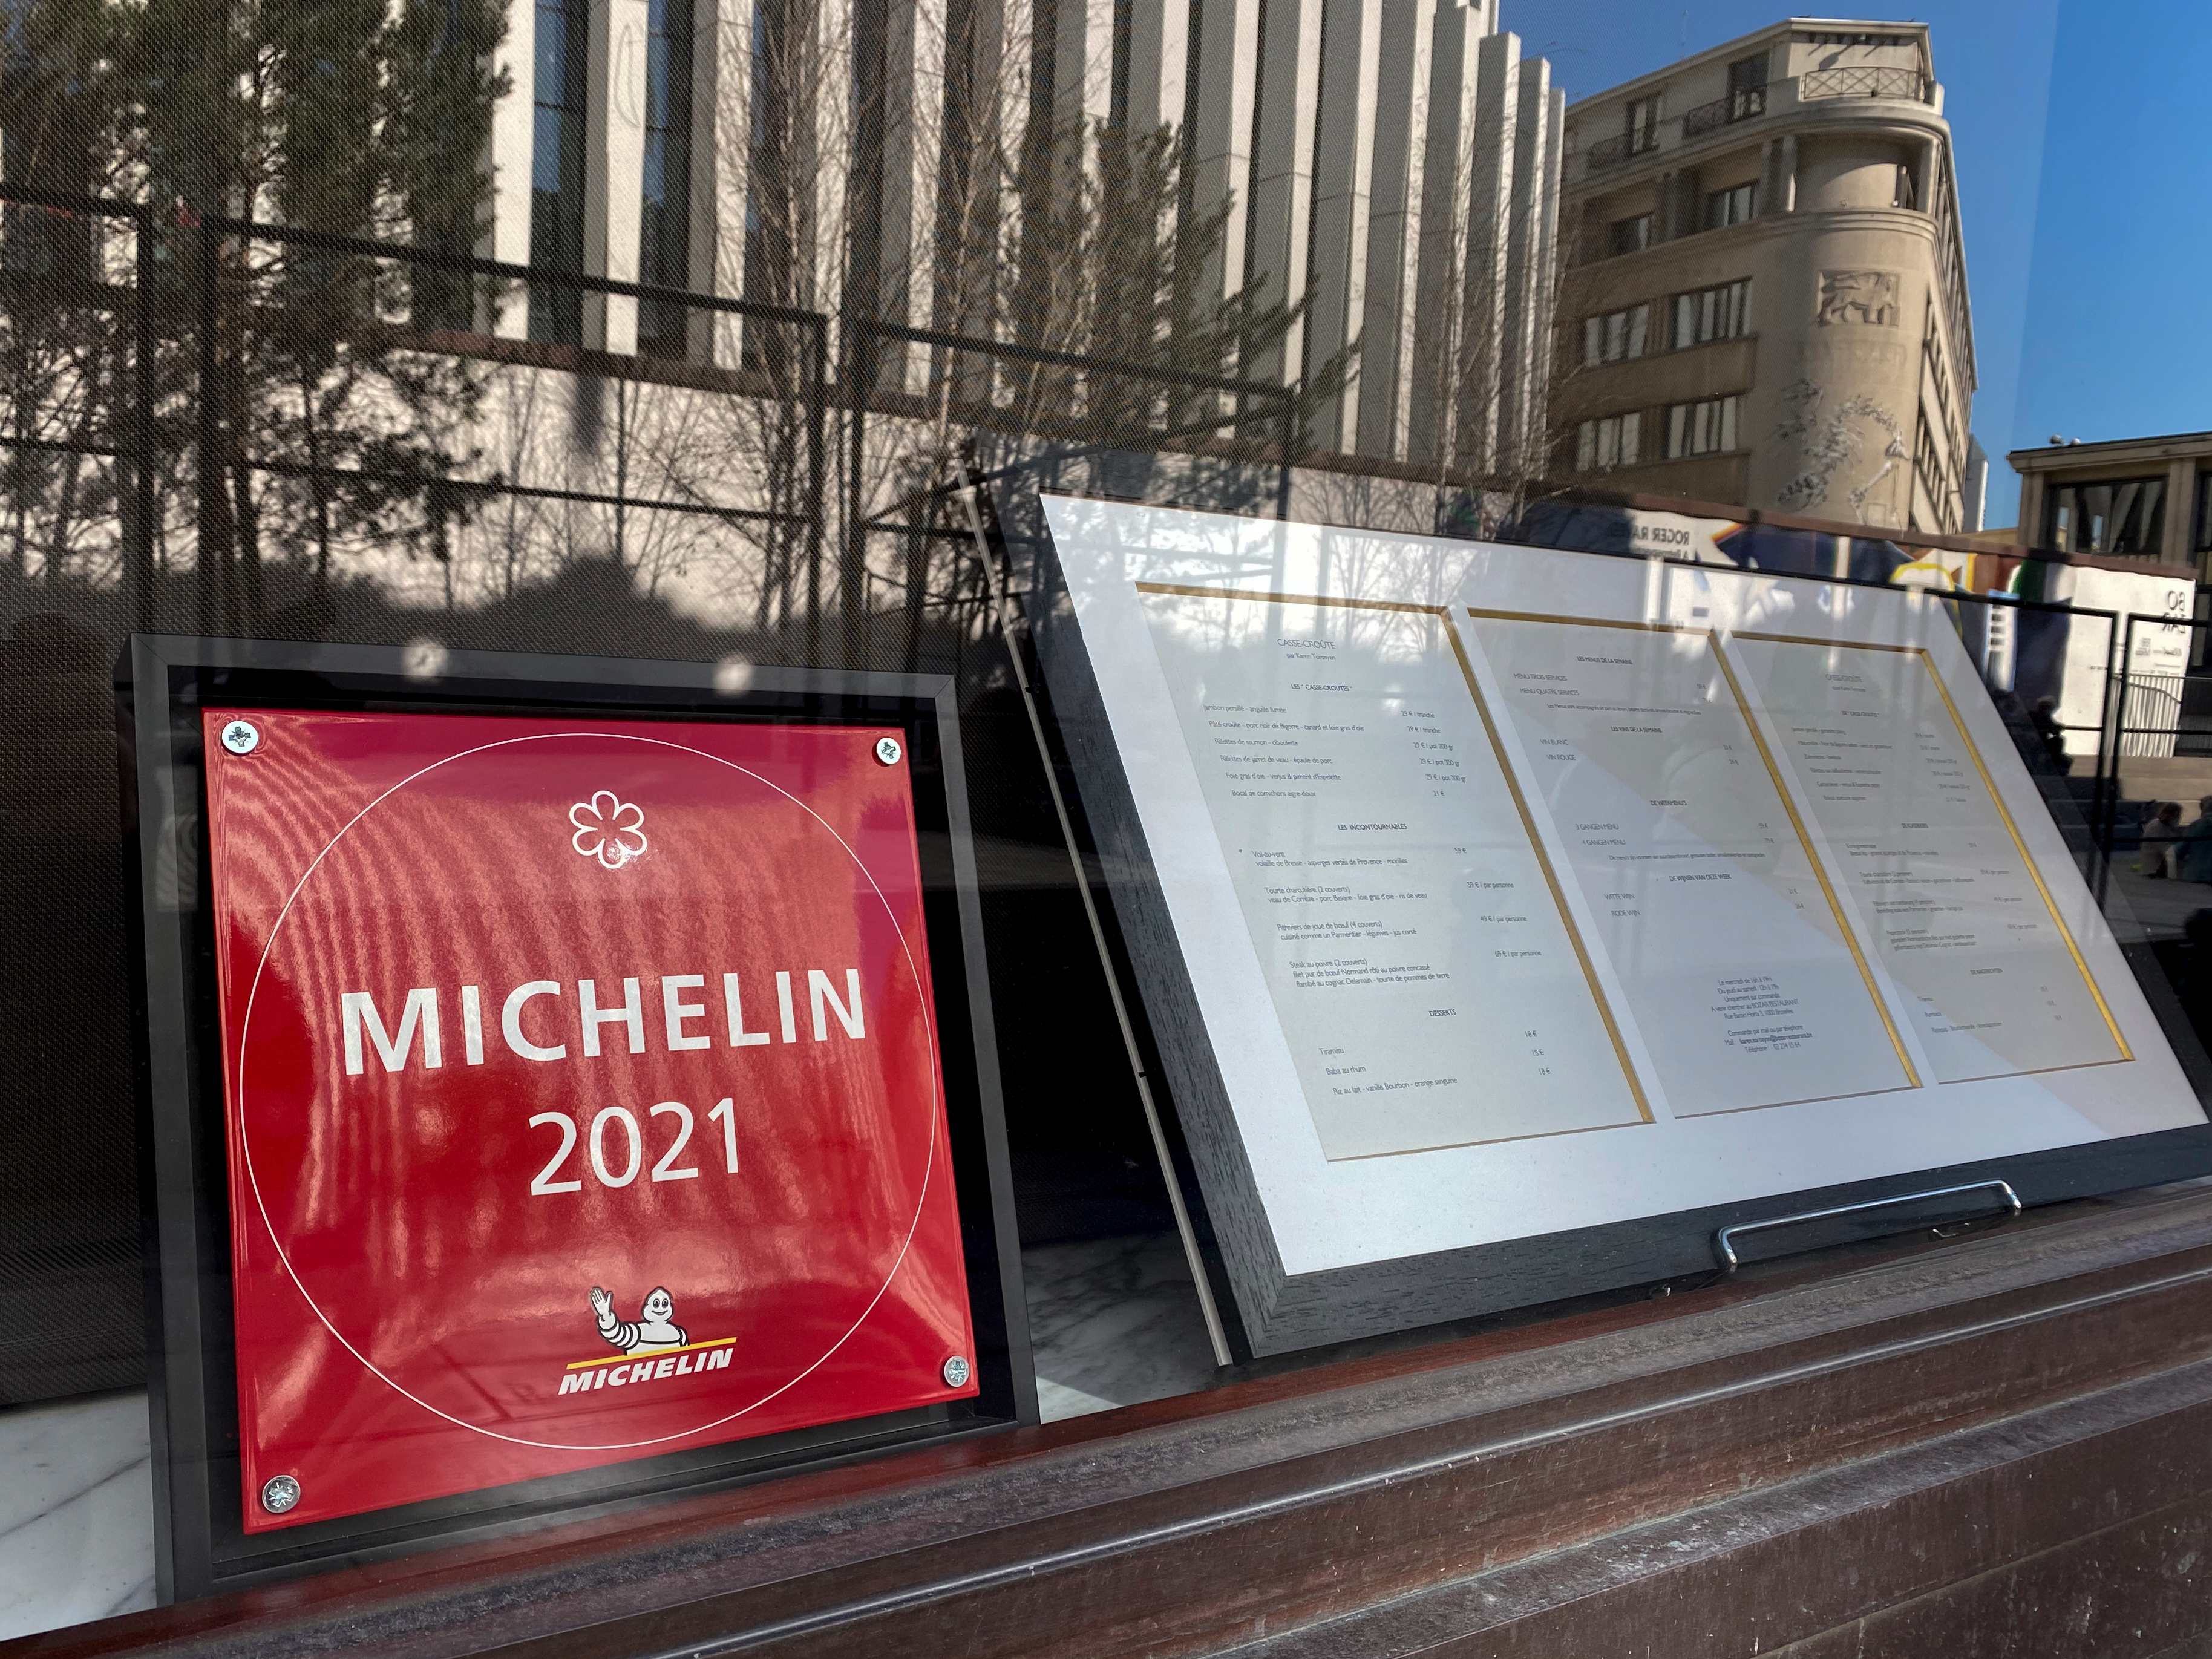 """A red square sign reading """"michelin 2021"""" framed in the window of a restaurant, with a framed menu beside it"""